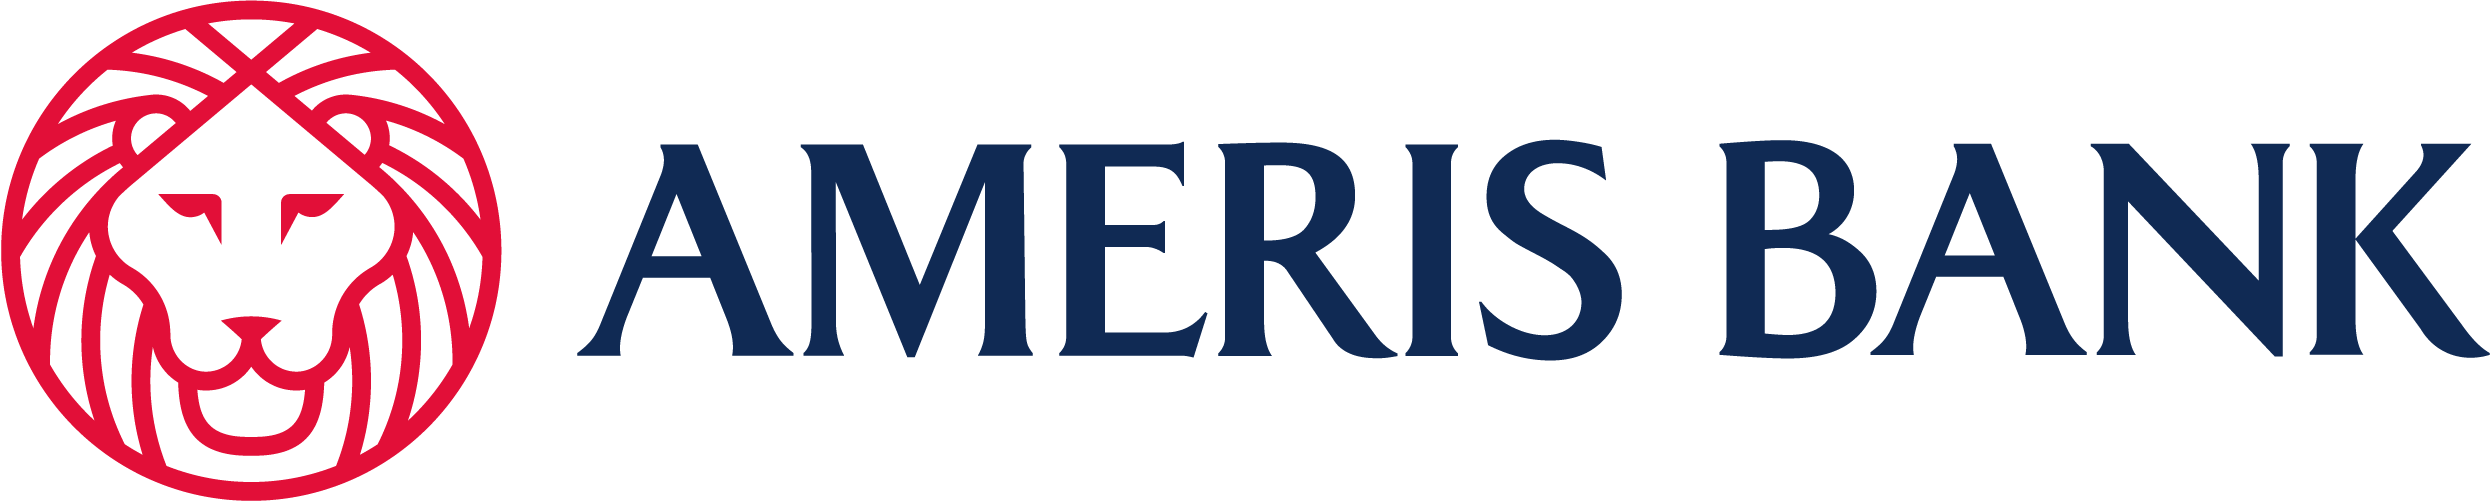 Ameris Bank Logo.png